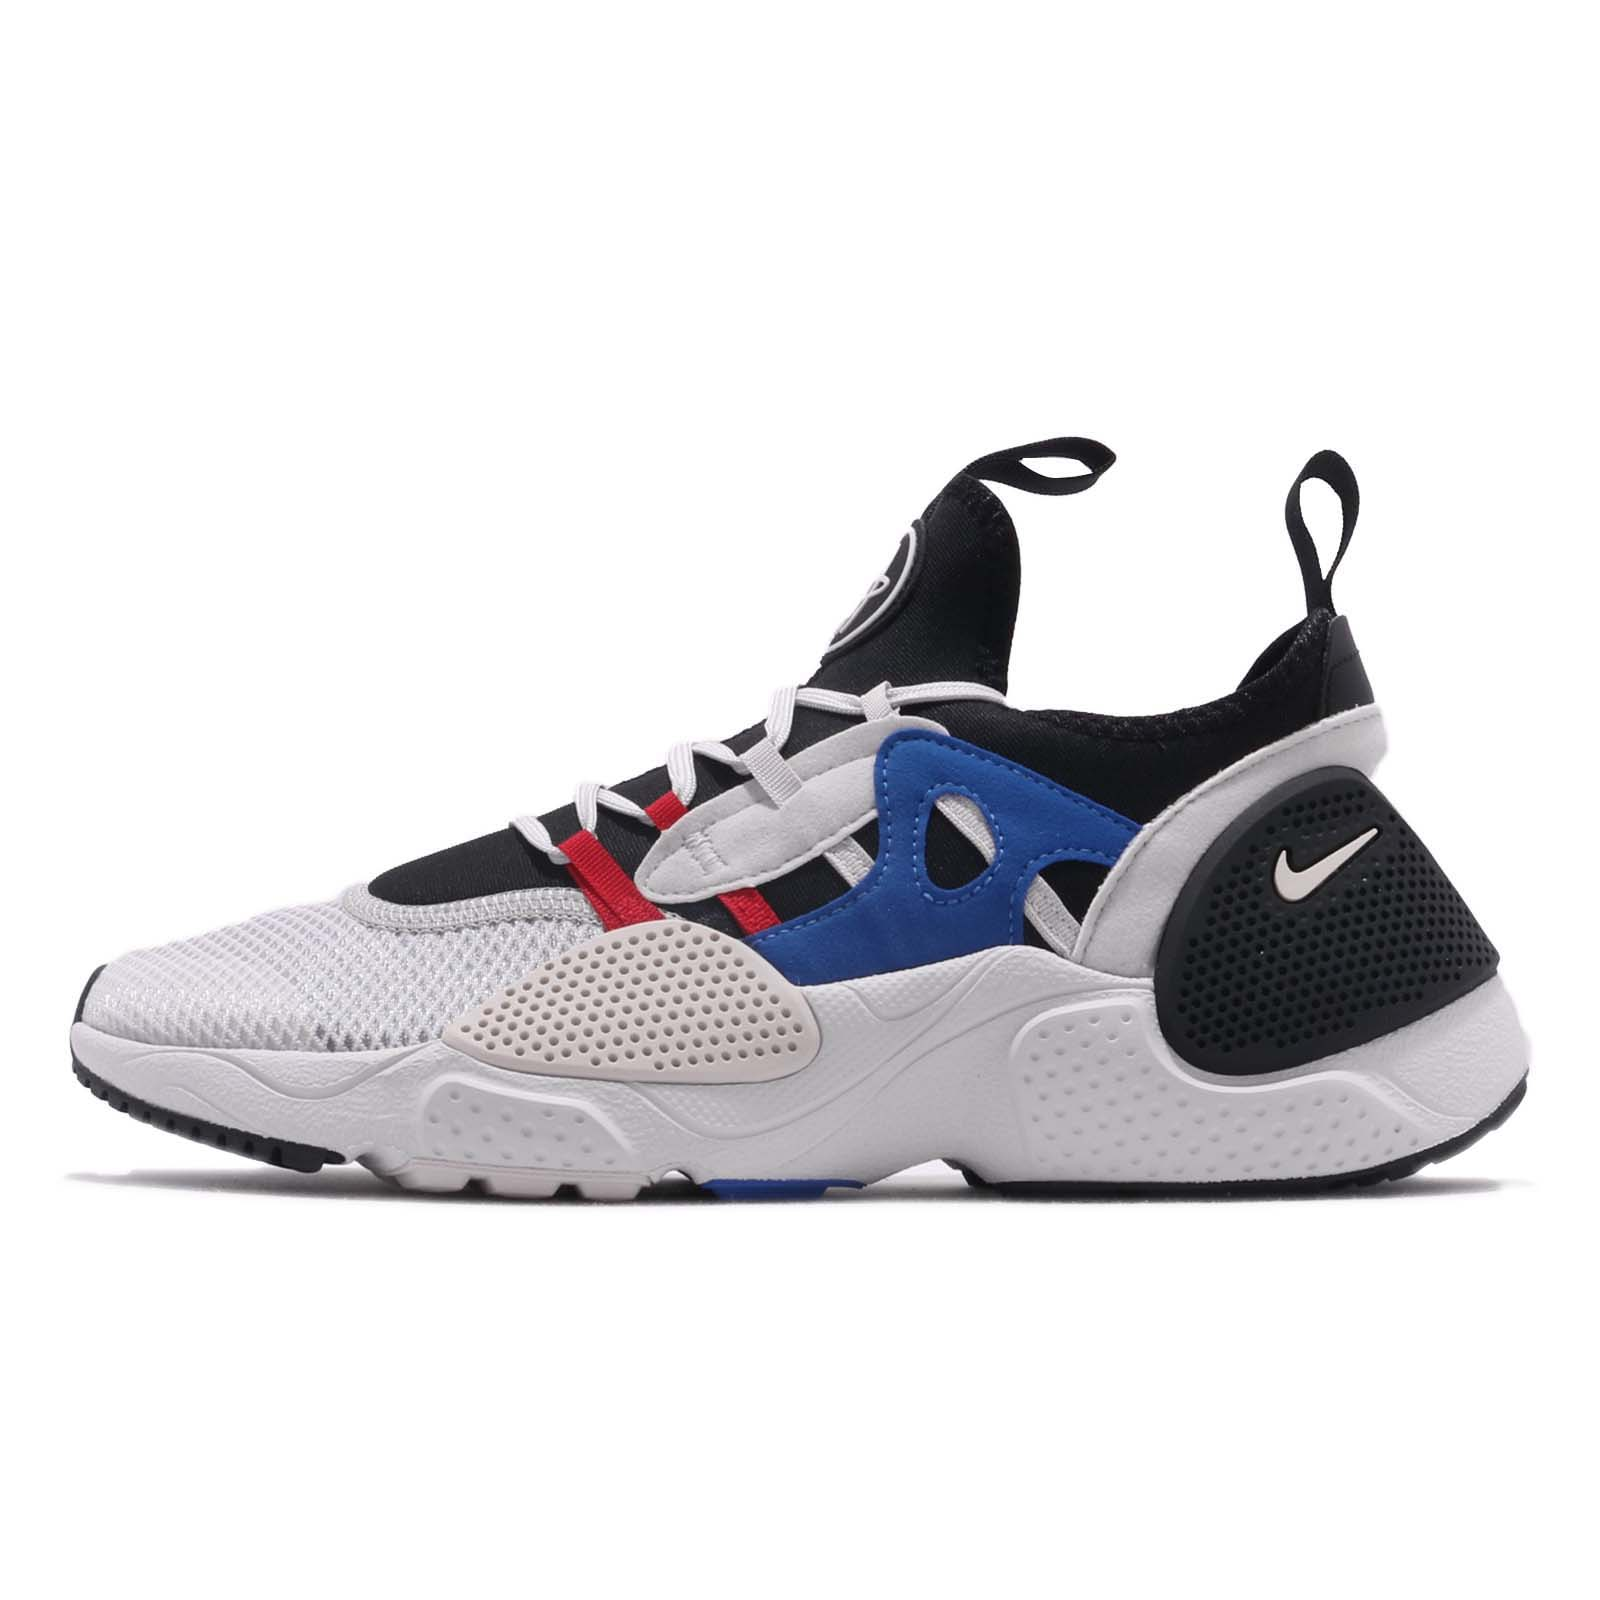 the best attitude 22af6 bff56 Details about Nike Huarache E.D.G.E. Txt Black Grey Game Royal Red Men Shoe  Sneaker AO1697-001